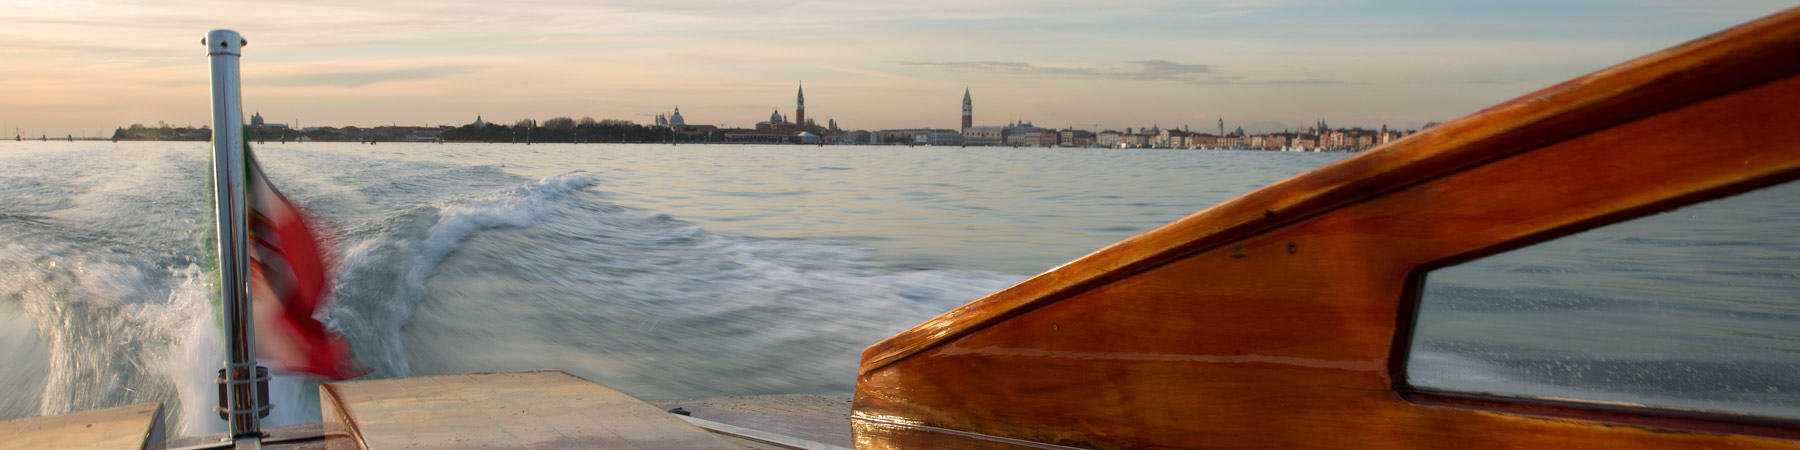 Venice like never seen before - Photo Pêcheur d'Images